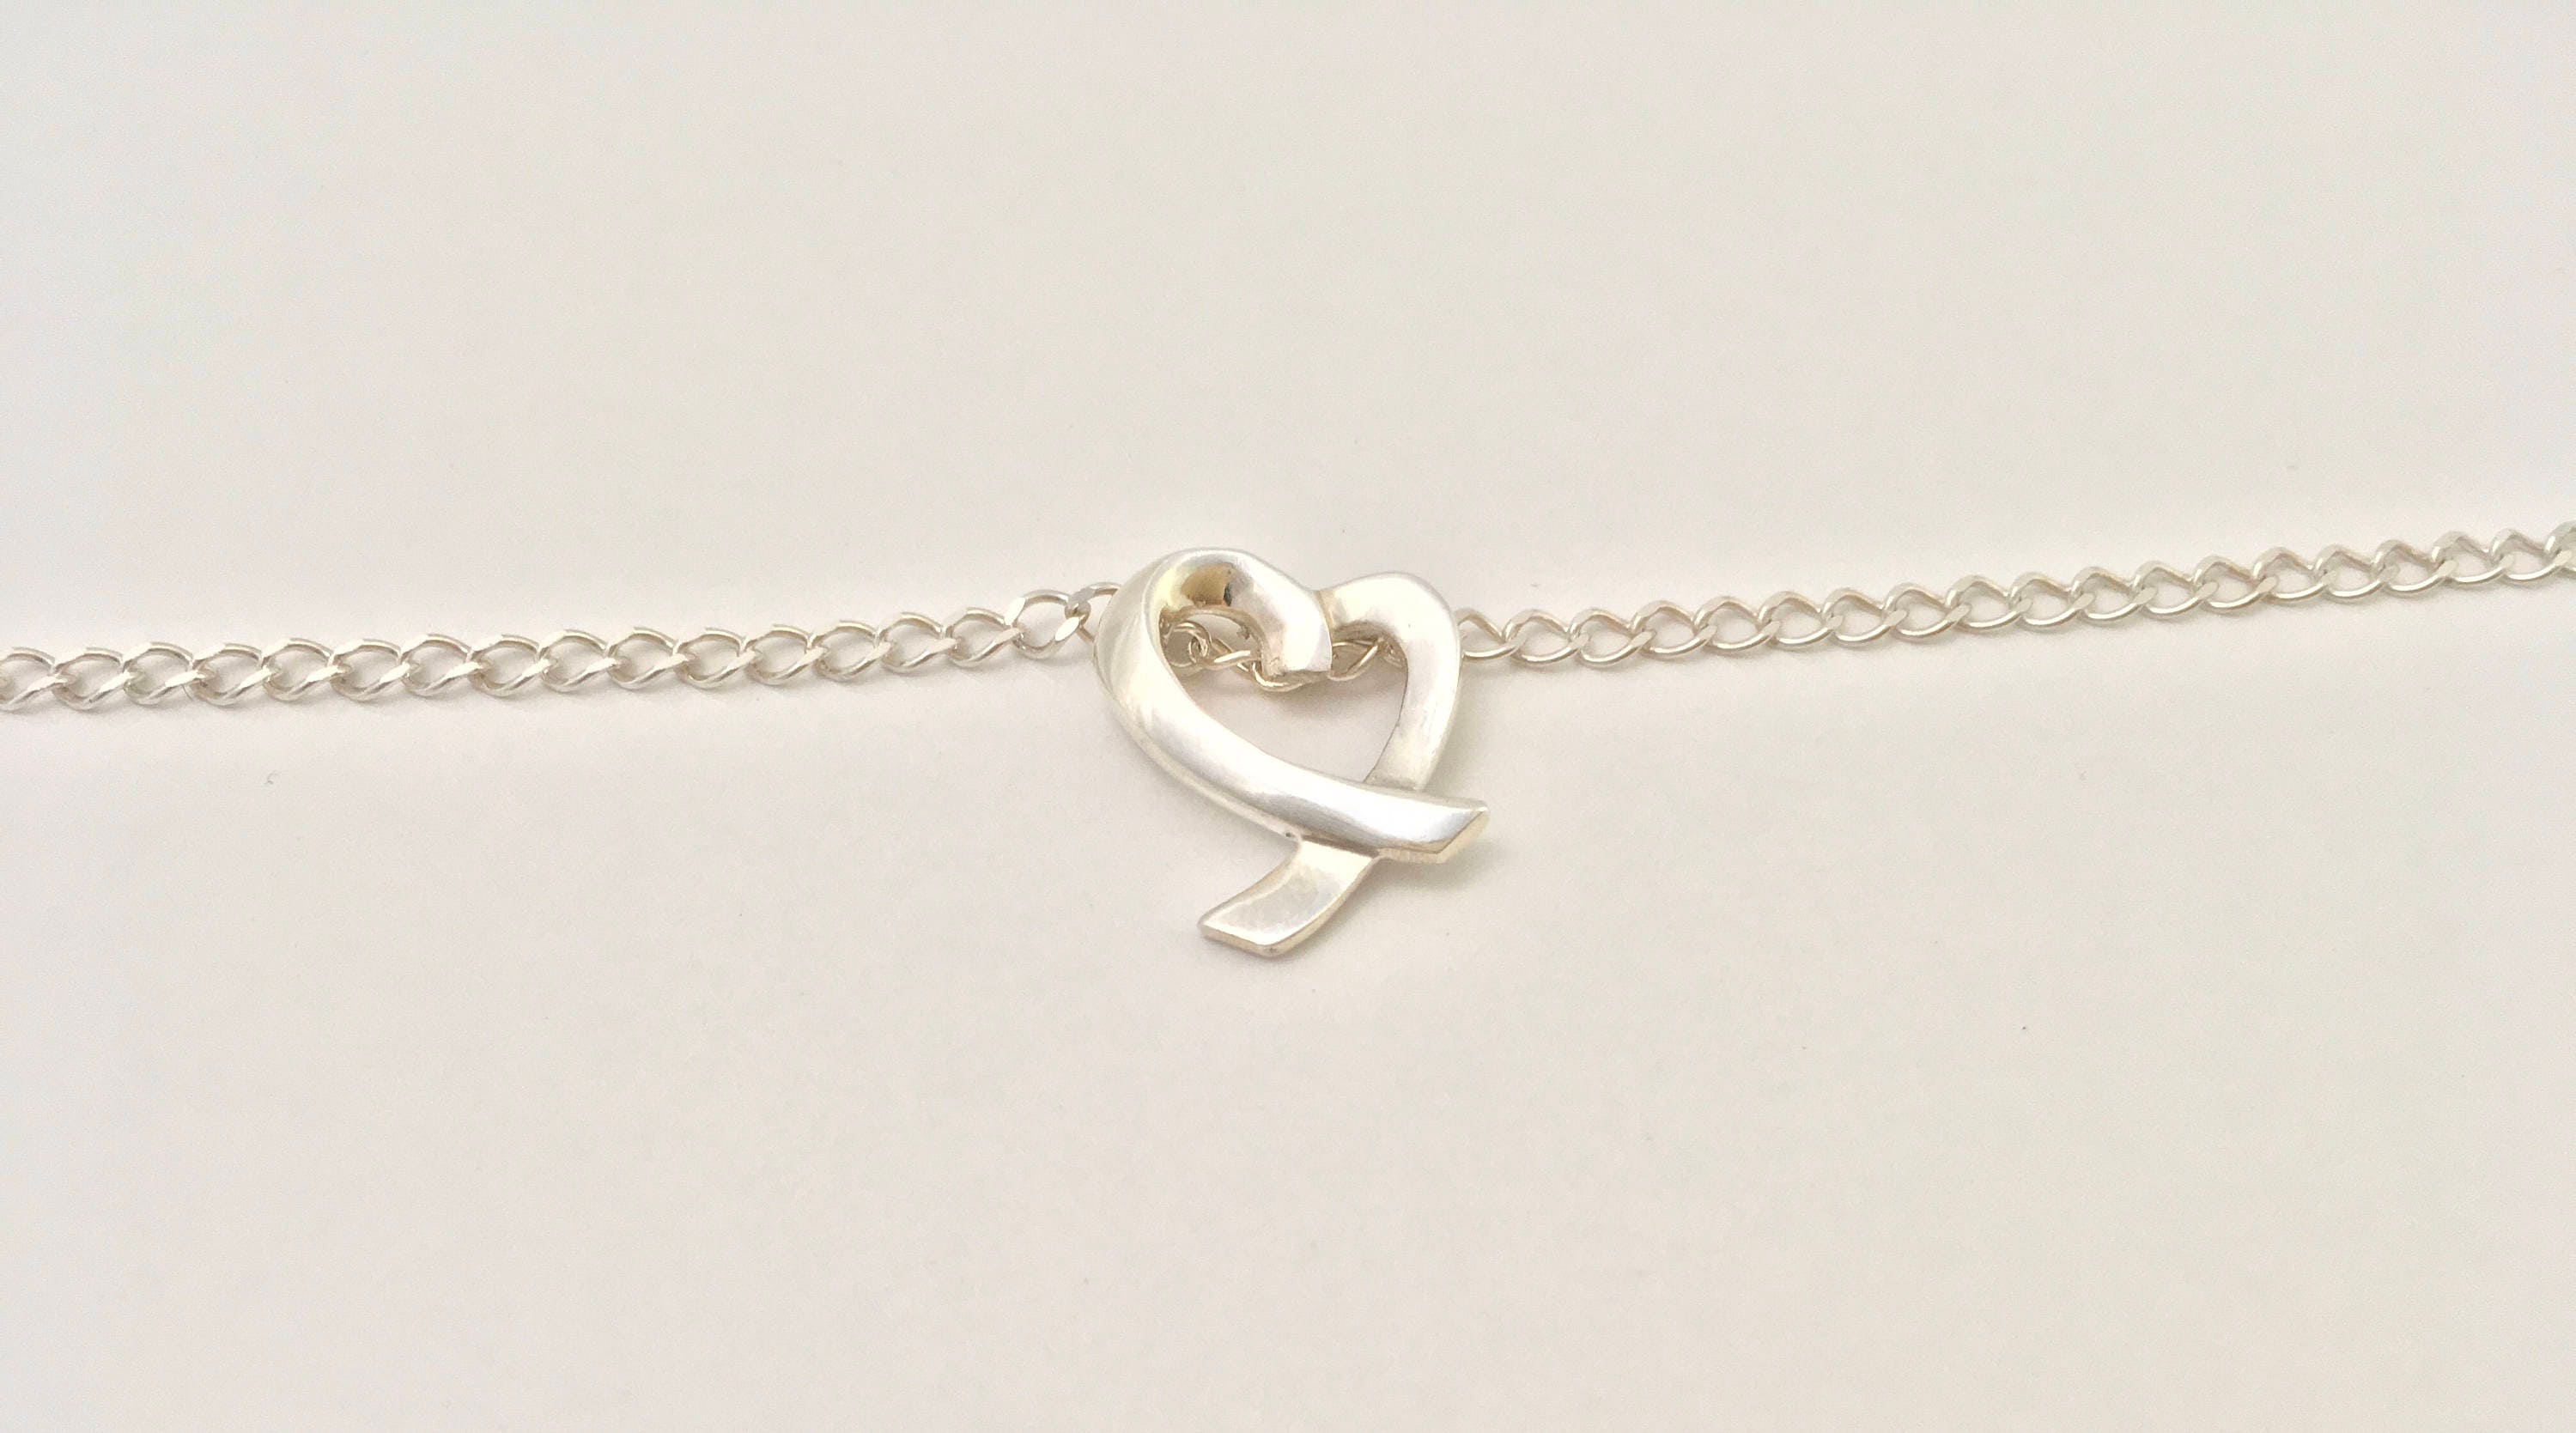 link watches key overstock charm lock jewelry and bracelet free product inch gold white heart anklet today yellow shipping